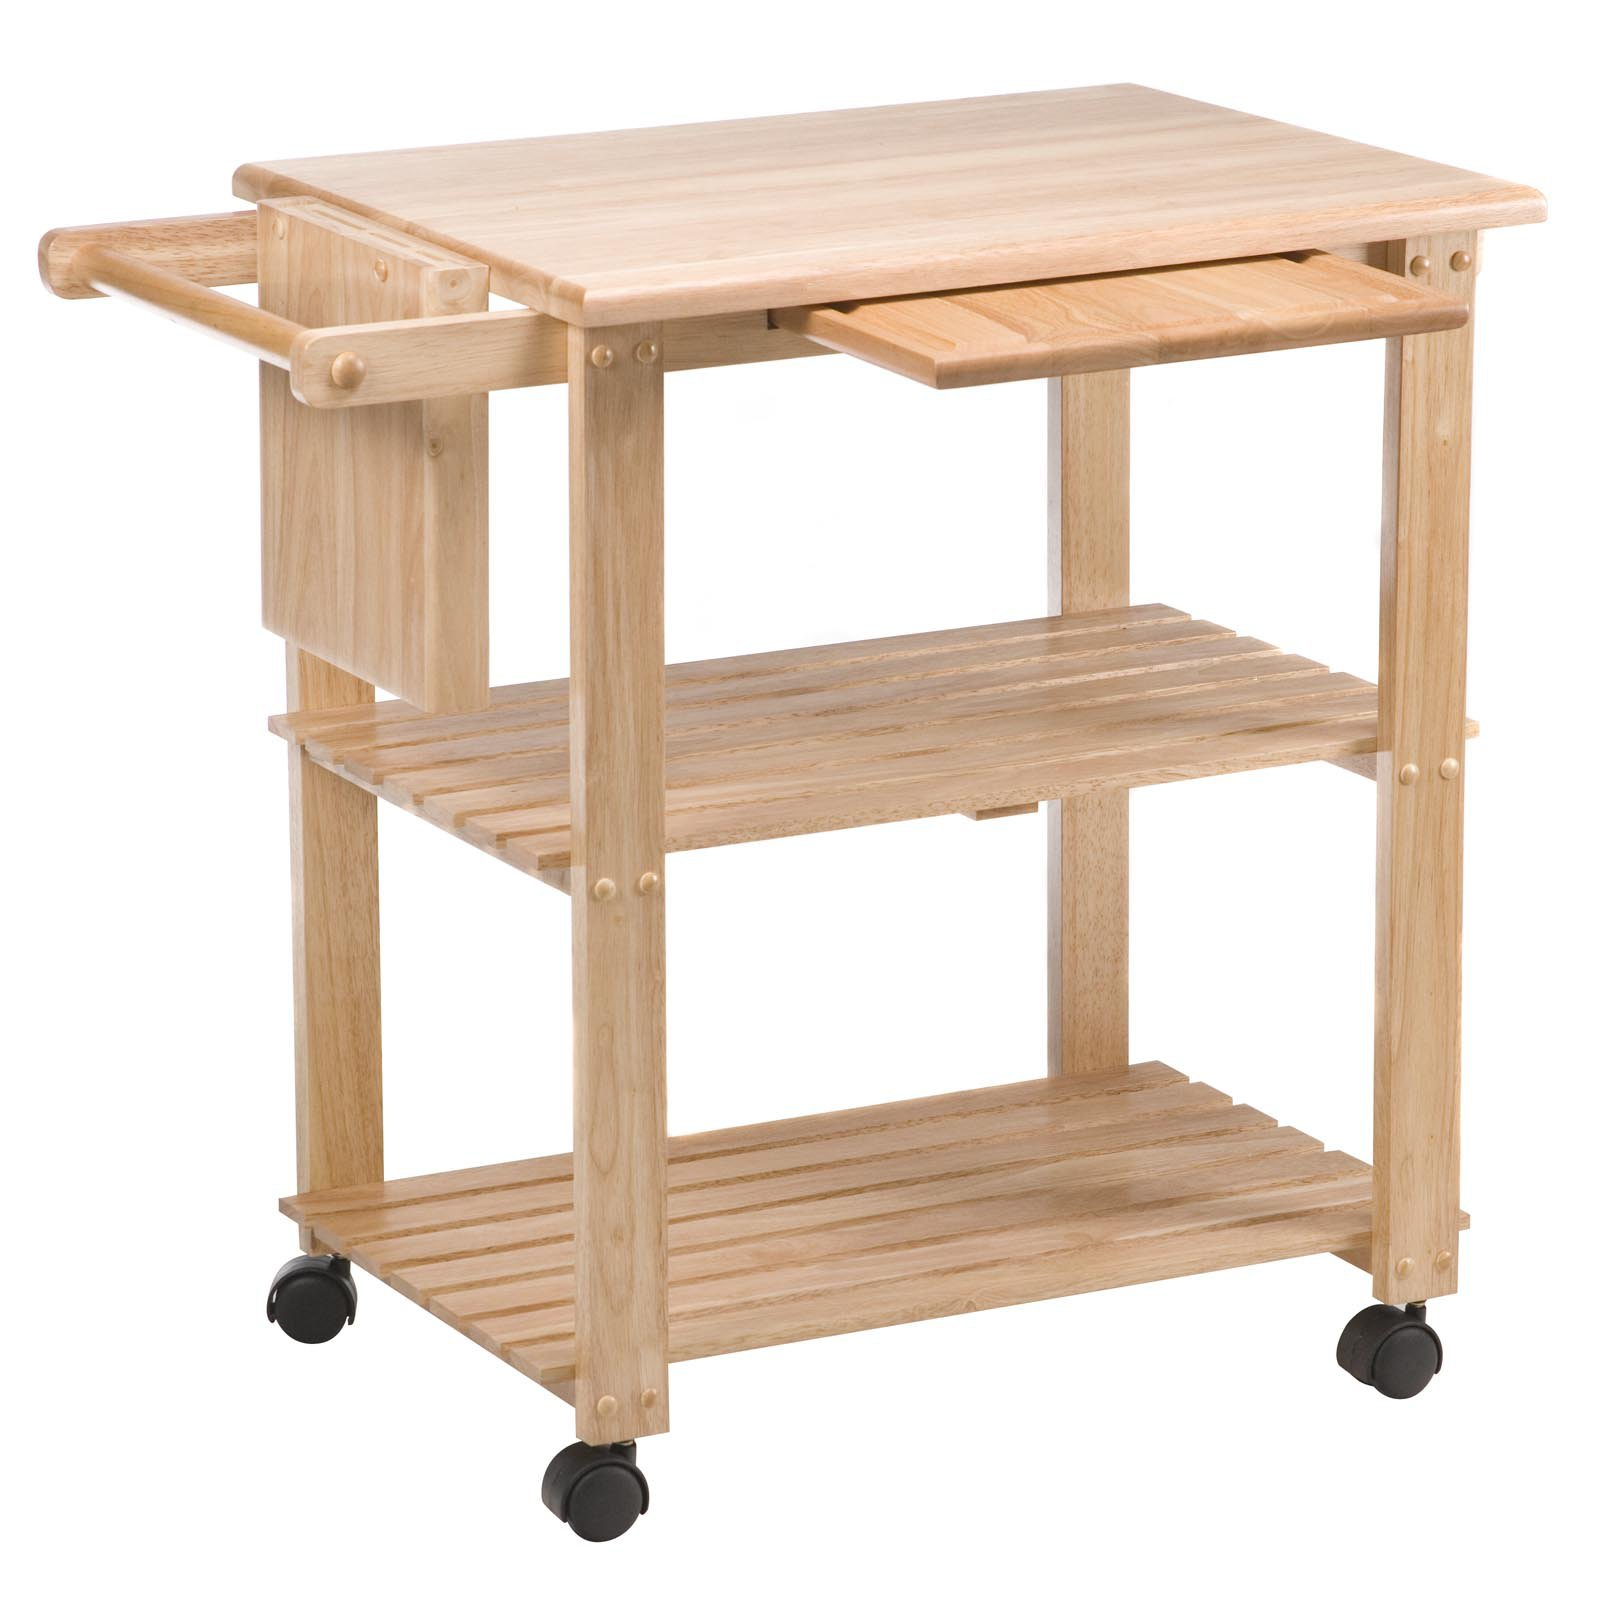 kitchen cart on wheels navy blue rugs utility rack shelves durable storage heavy duty wood sliding tray